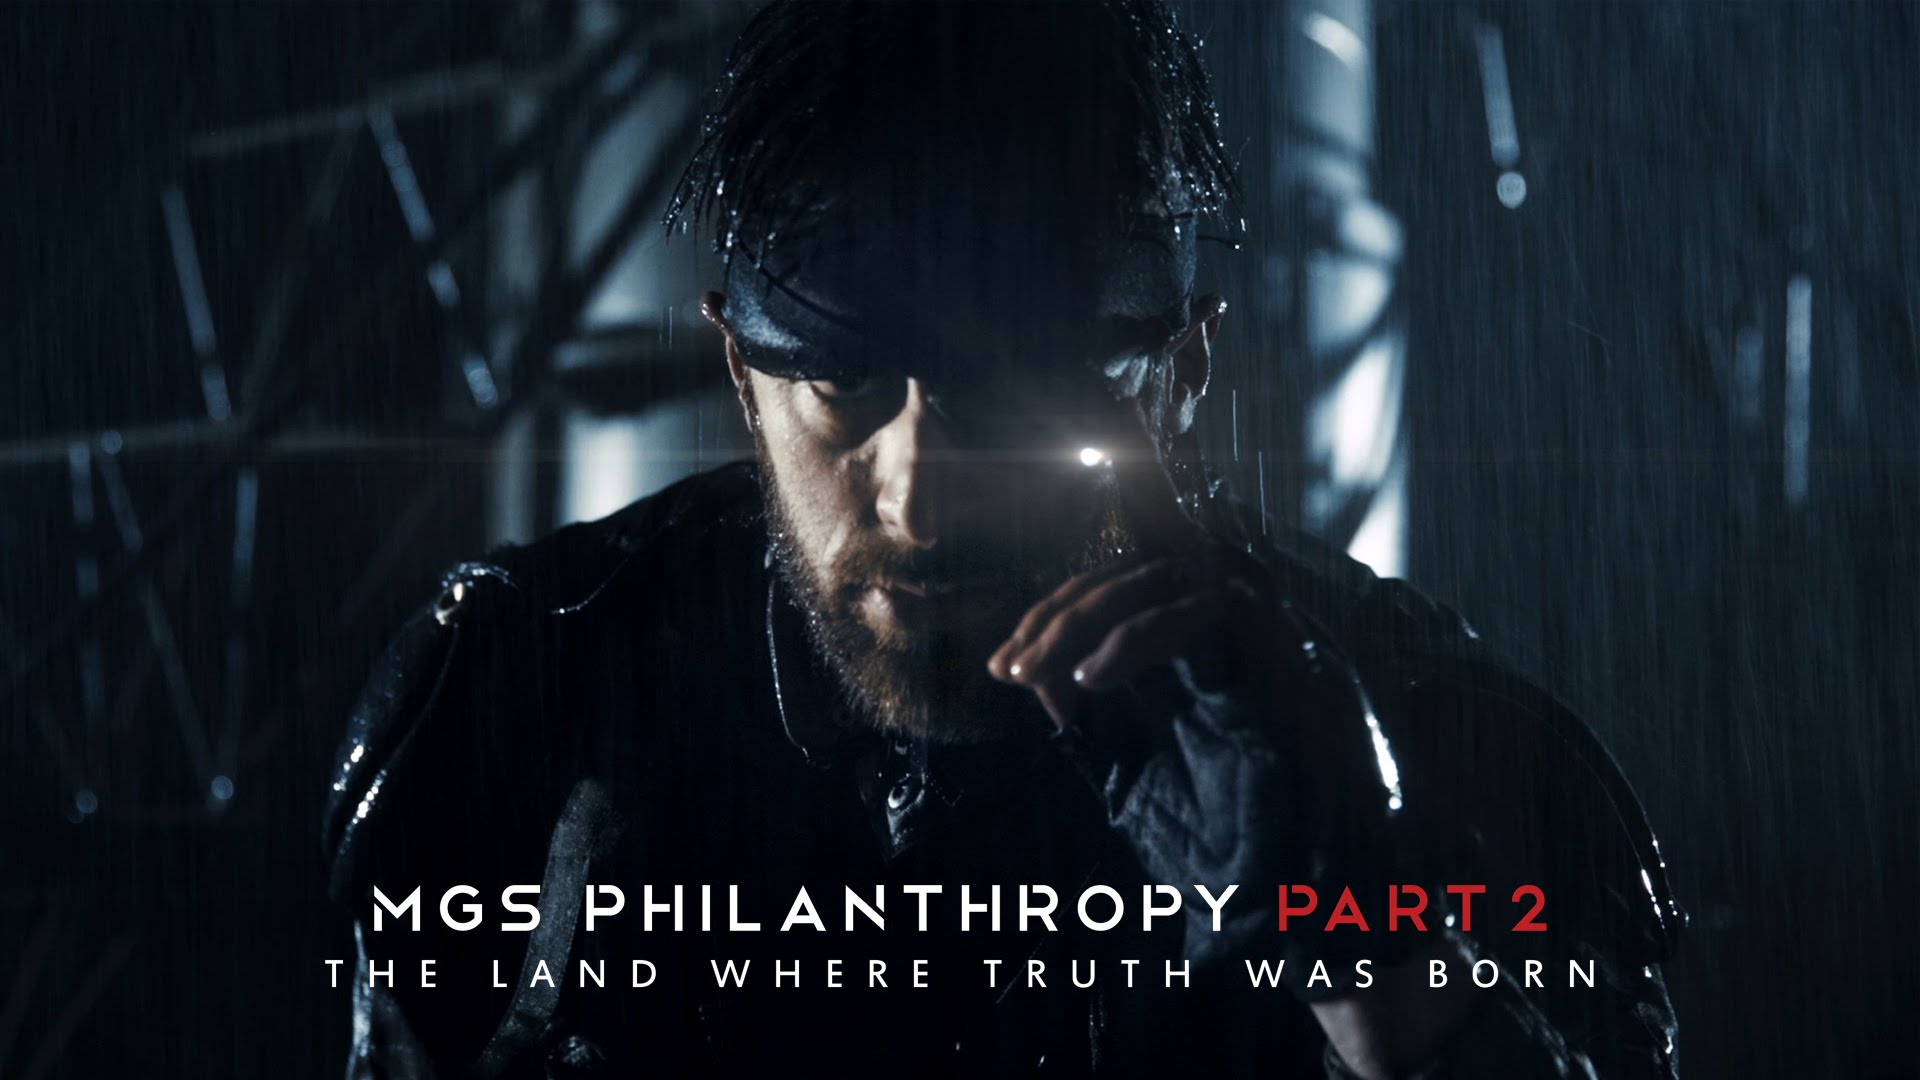 Metal Gear Solid: Philanthropy 2 - The Land Where Truth Was Born